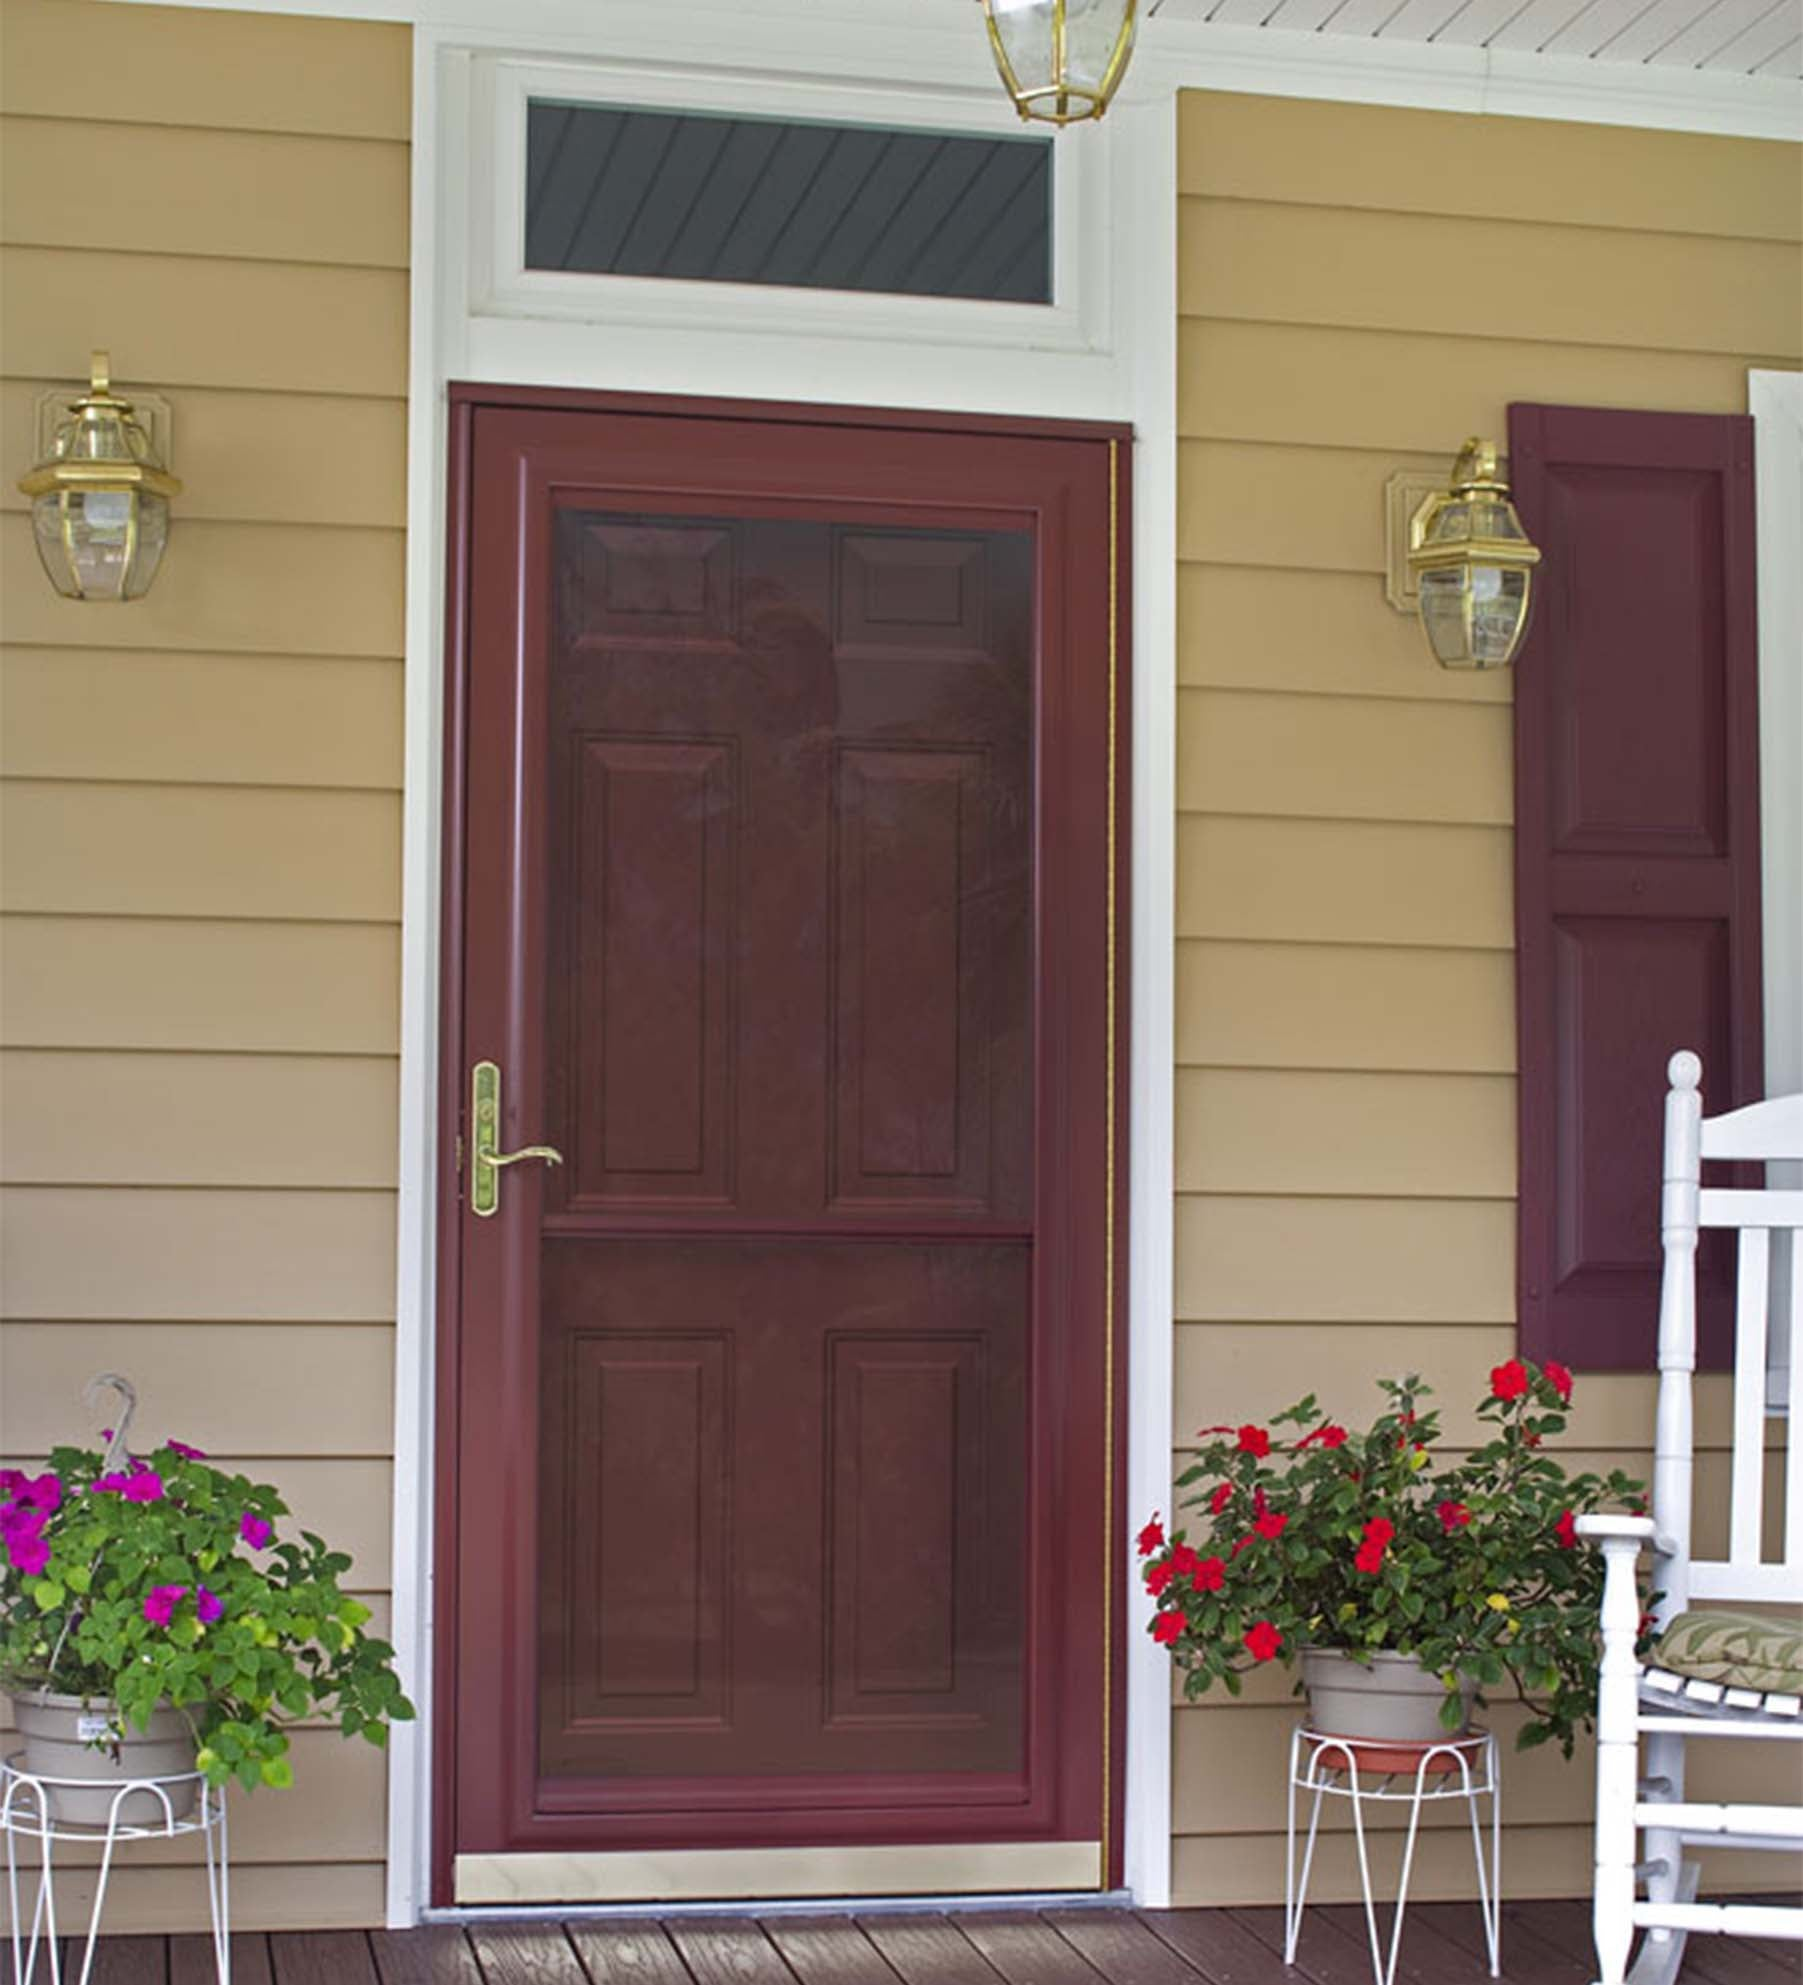 INSTALLED Larson Elegant Selection XTR Storm Door w/ Hidden Closer & Hardware     STARTING $425